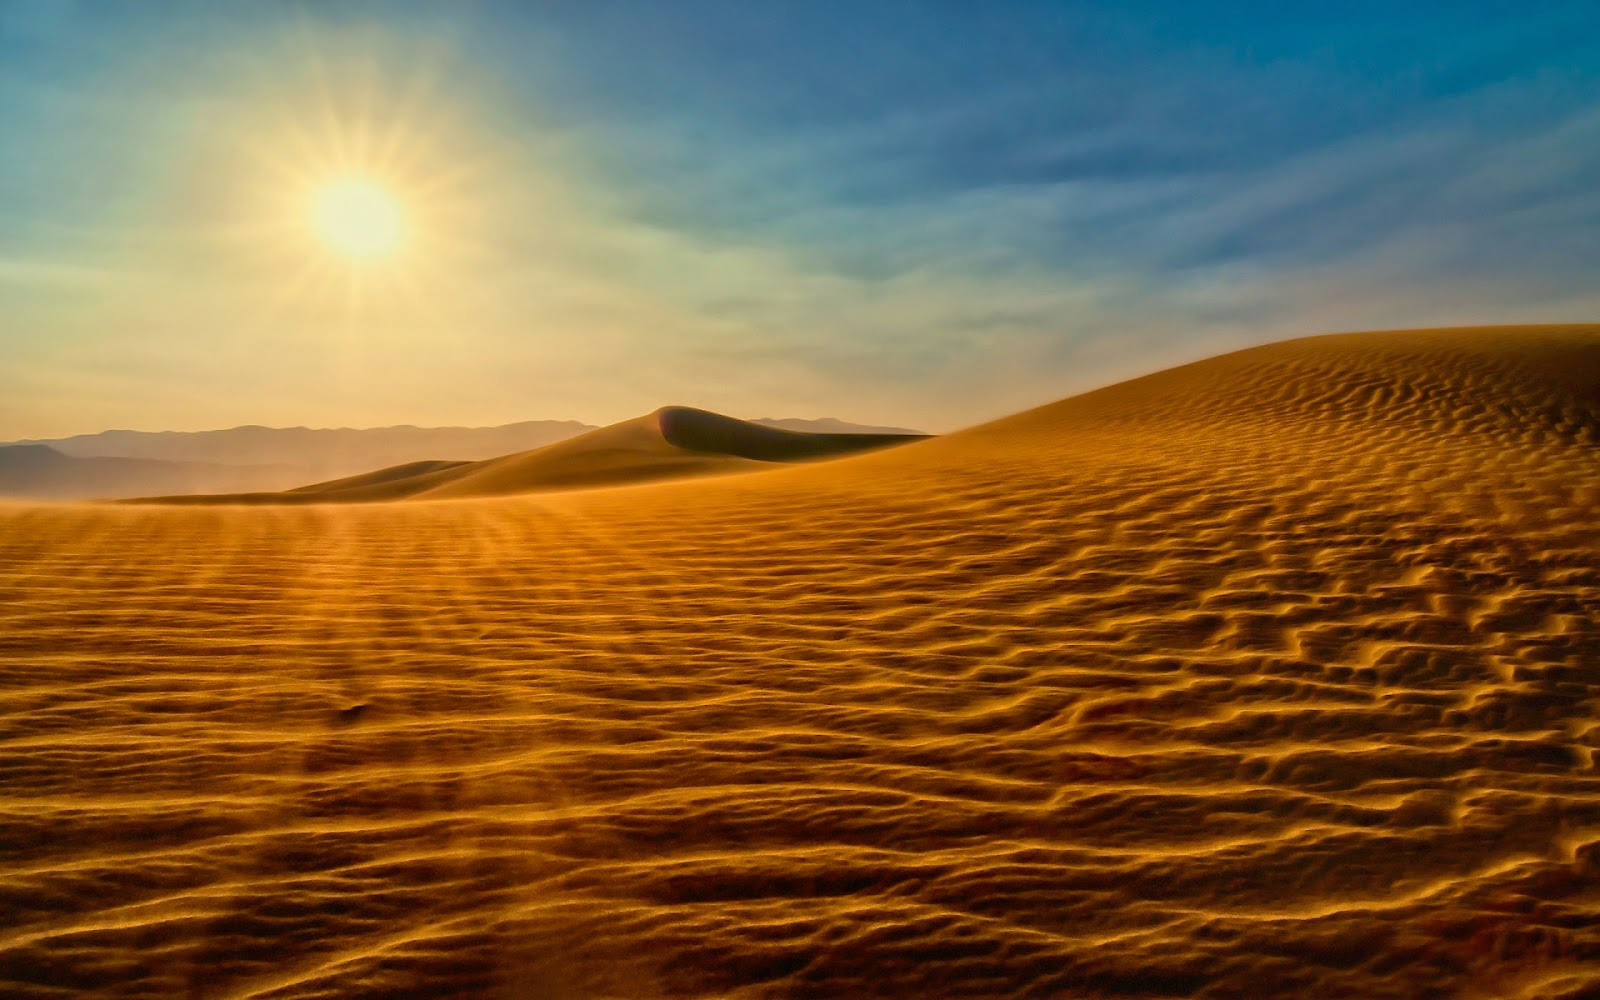 death valley sunset dunes wallpapers - Death Valley Sunset Dunes Wallpapers HD Wallpapers